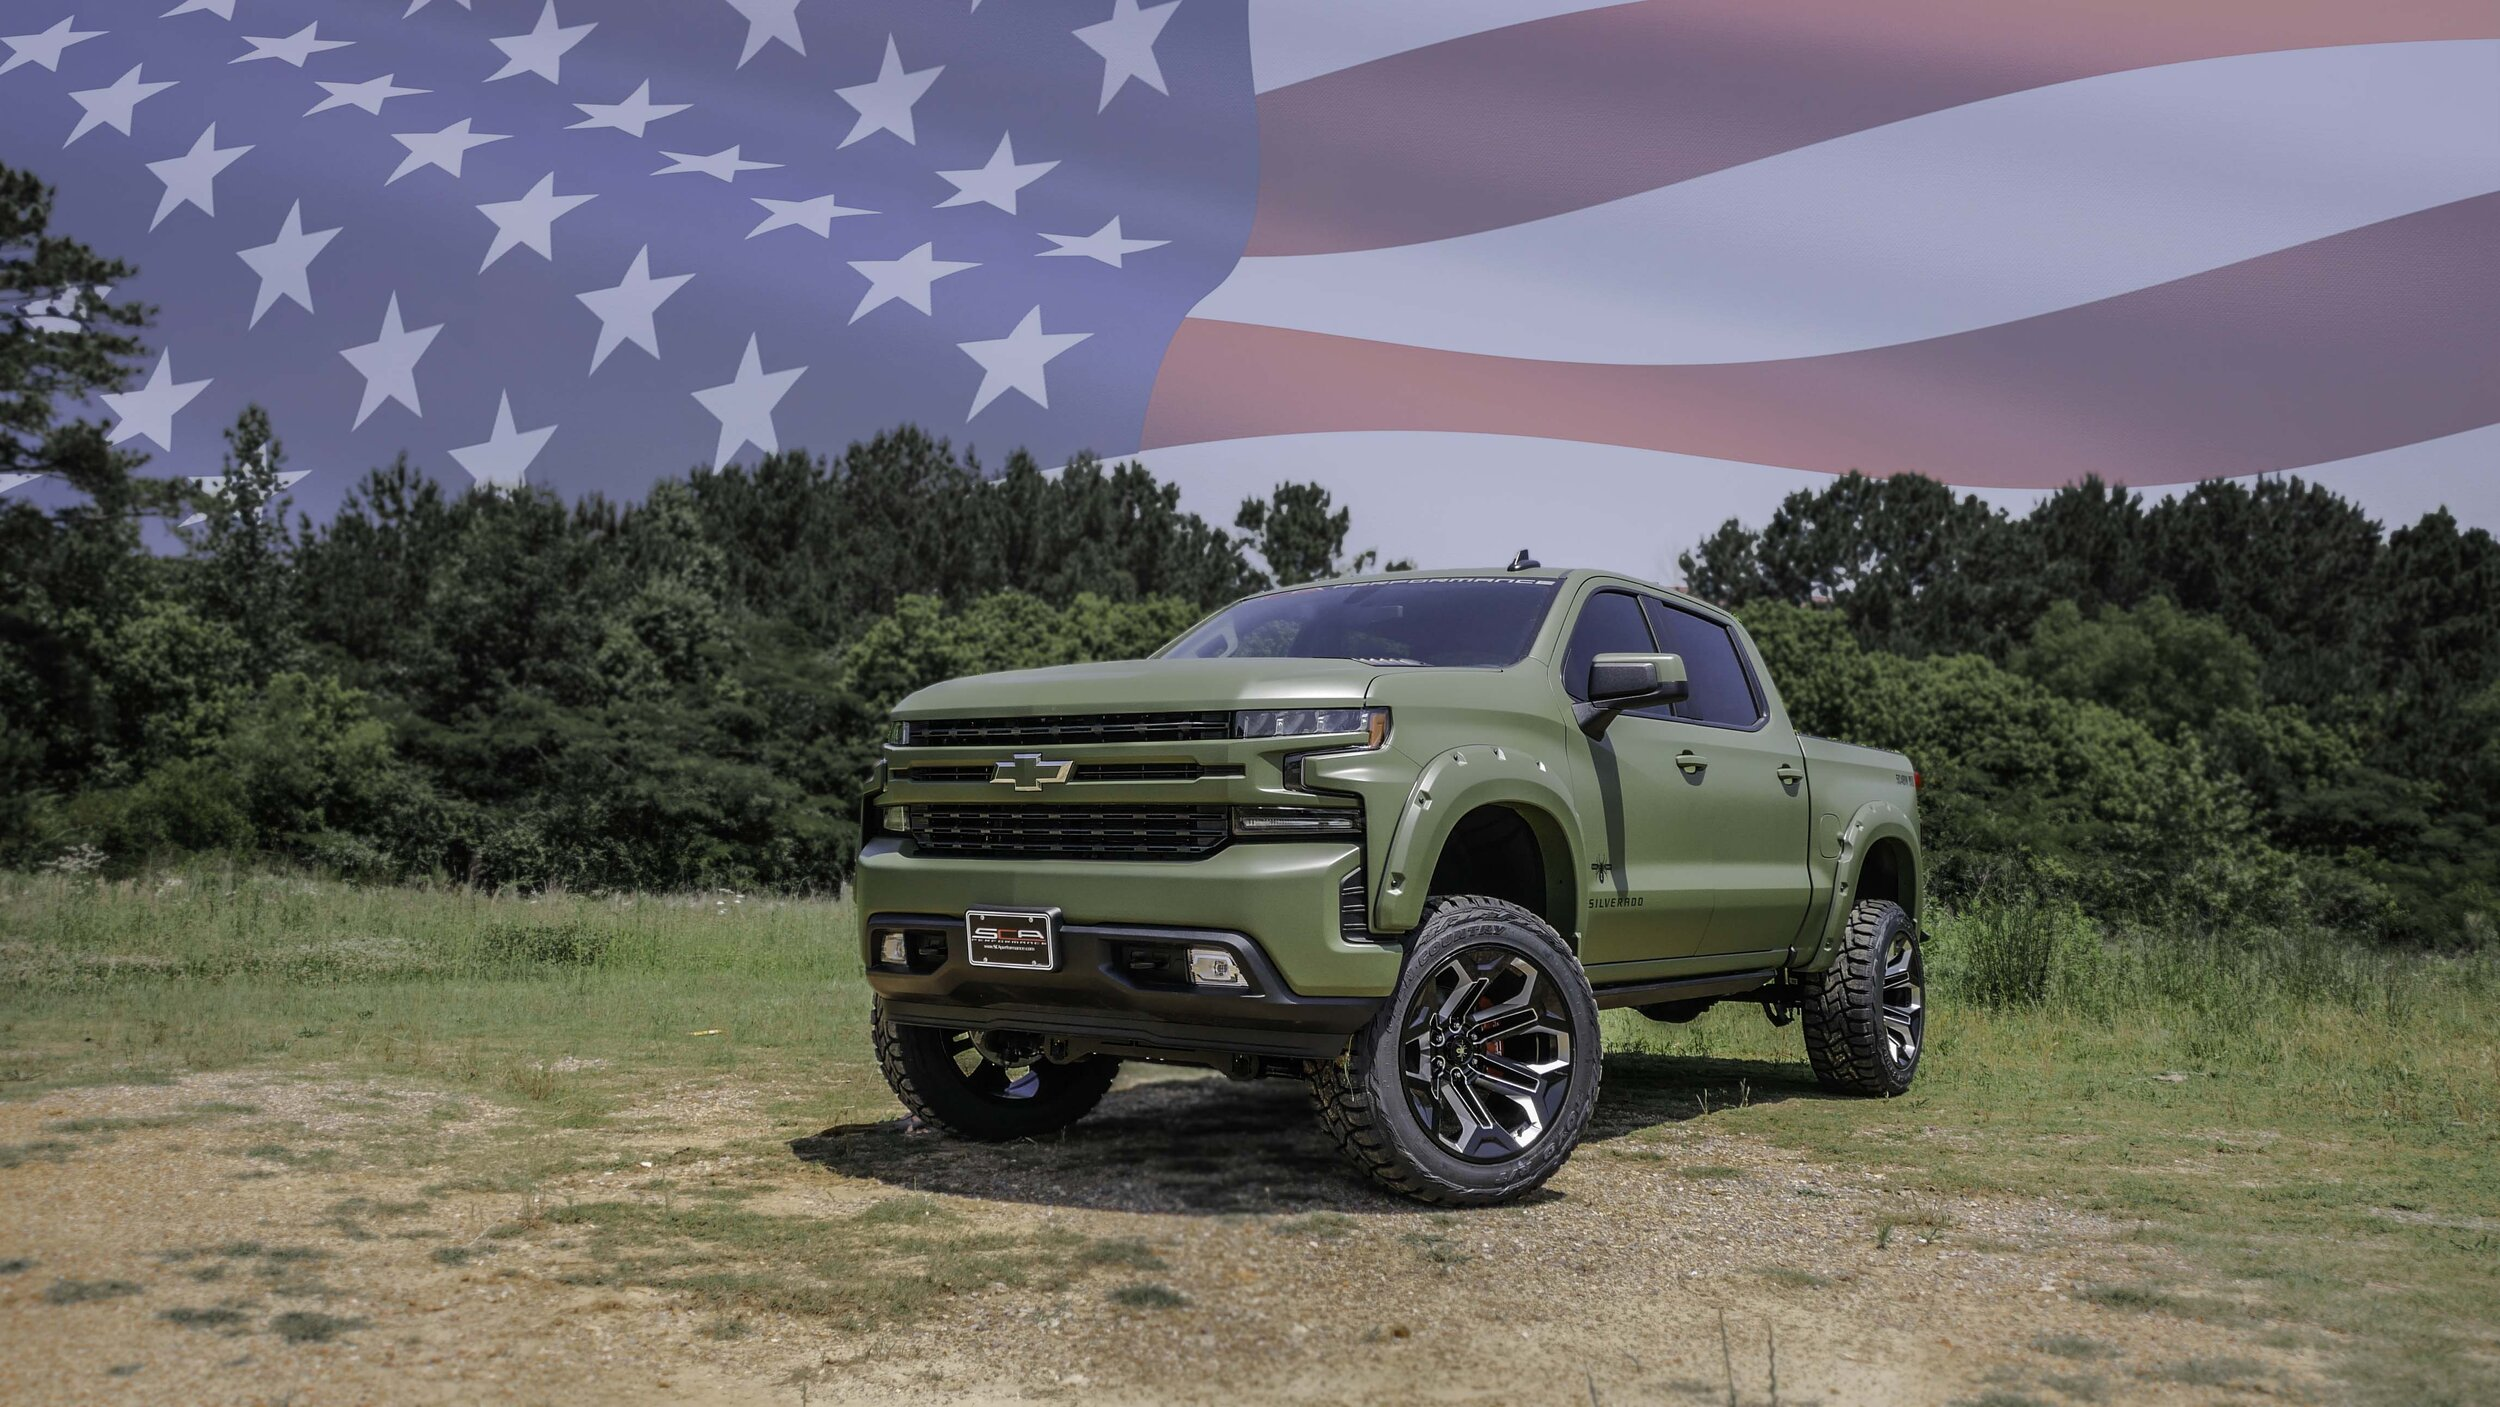 Chevy AFBW OD Green with American Flag.jpg